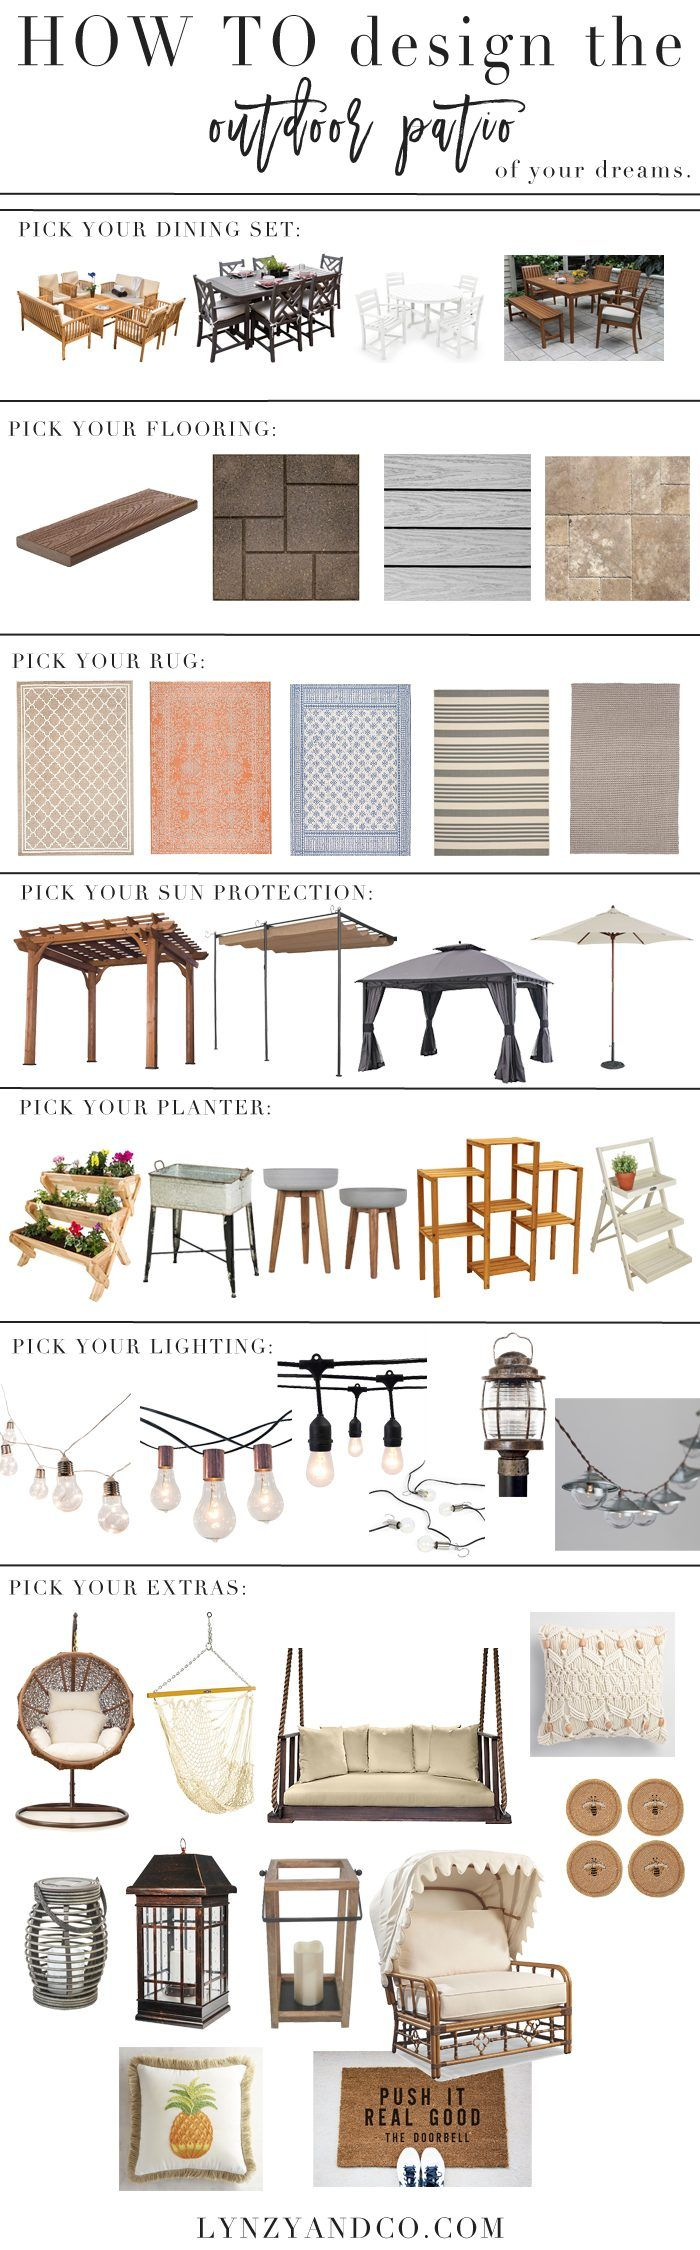 How to Design the Outdoor Patio of Your Dreams // Patio Ideas // Porch Ideas // Outdoor Patio